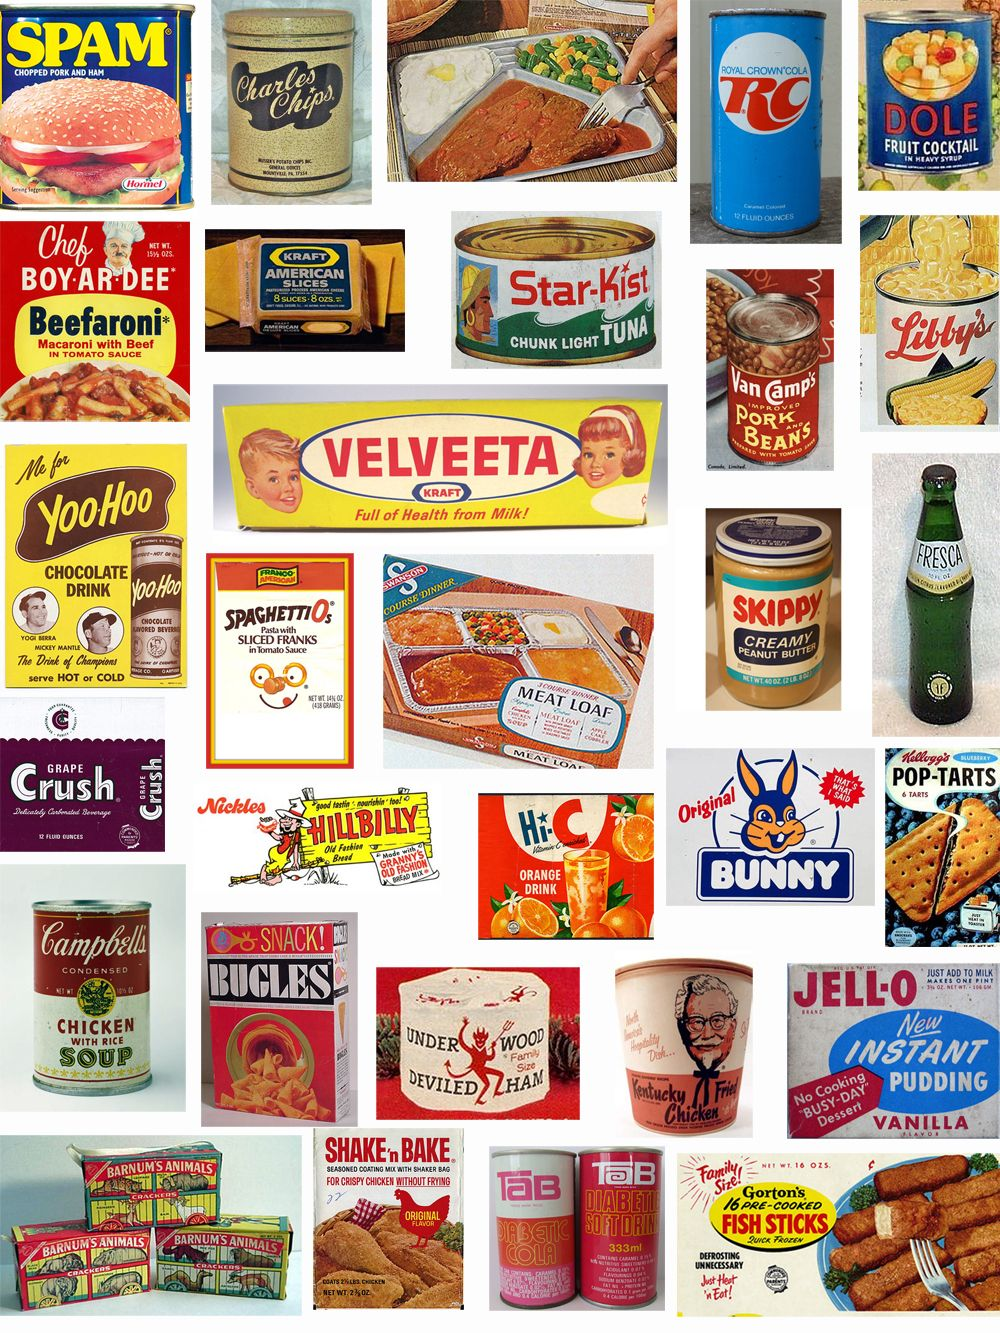 Child of the 60's food and beverage Retro recipes, 70s